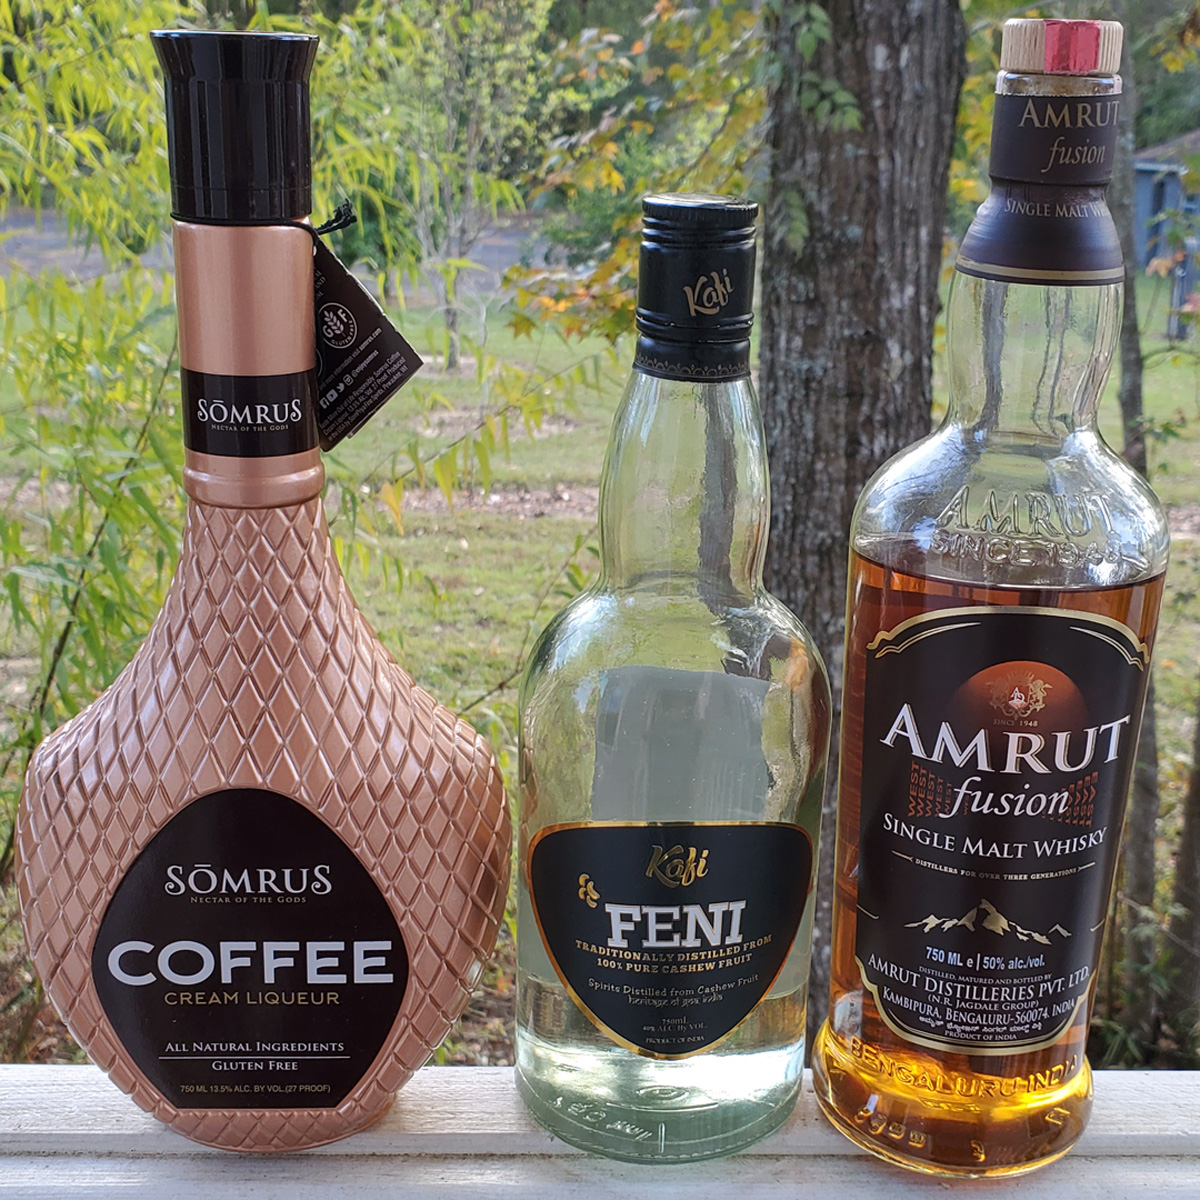 "The NOLADrinks Show – Spirits of India – Nov20Ep2 – Here's a bit (but not all!) of what we tasted on the show – Somrus Coffee Cream Liqueur, Kafi Feni by Heritage Spirits, and Amrut ""Fusion"" Single Malt Whisky."